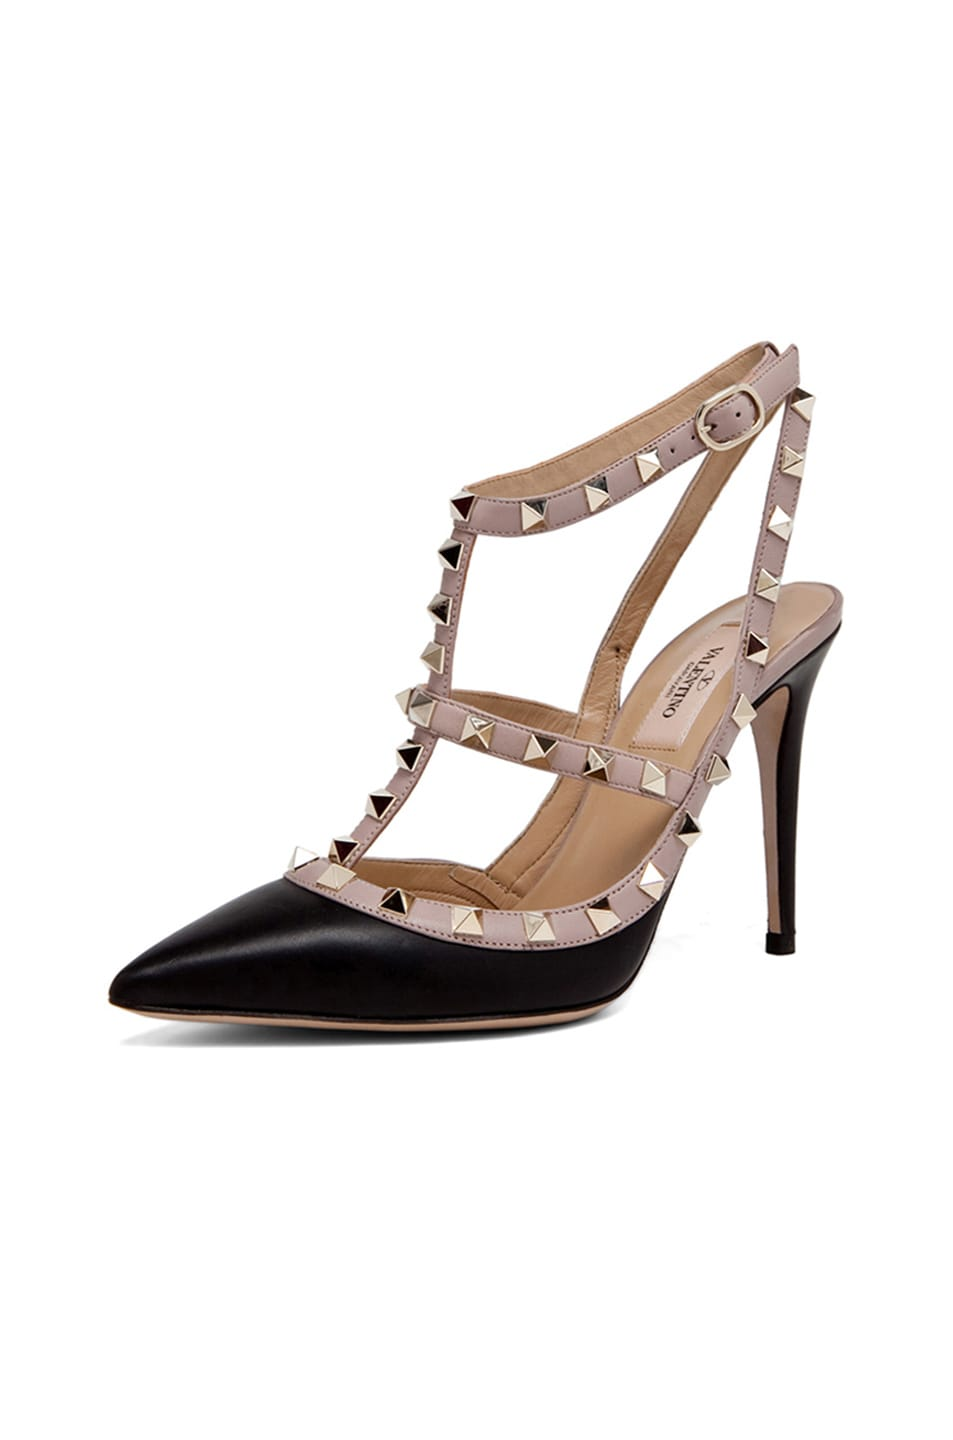 Image 2 of Valentino Rockstud Leather Slingbacks T.100 in Black